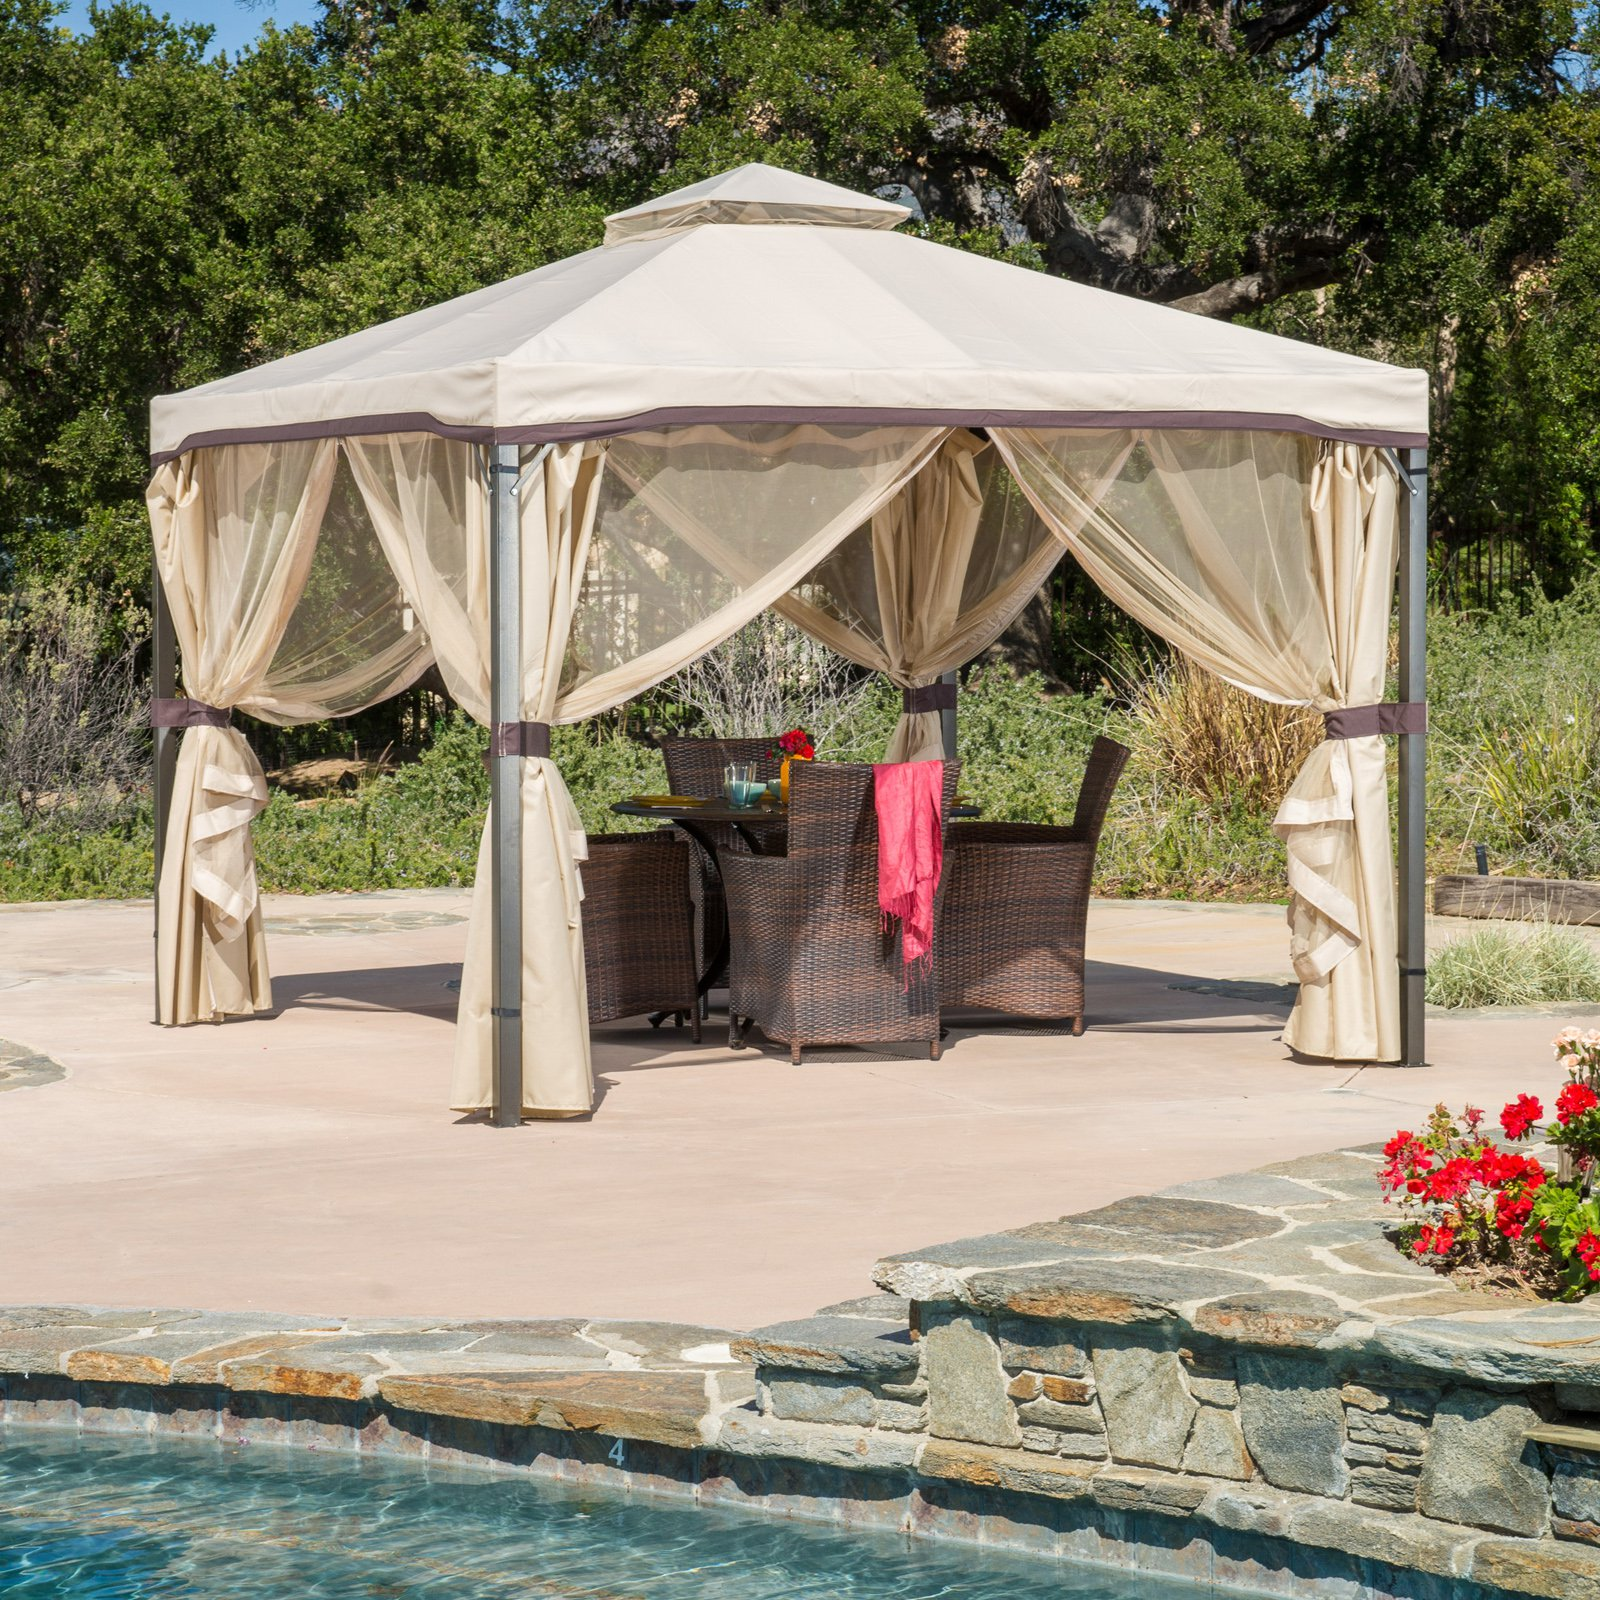 Genoa Gazebo by Best Selling Home Decor Furniture LLC